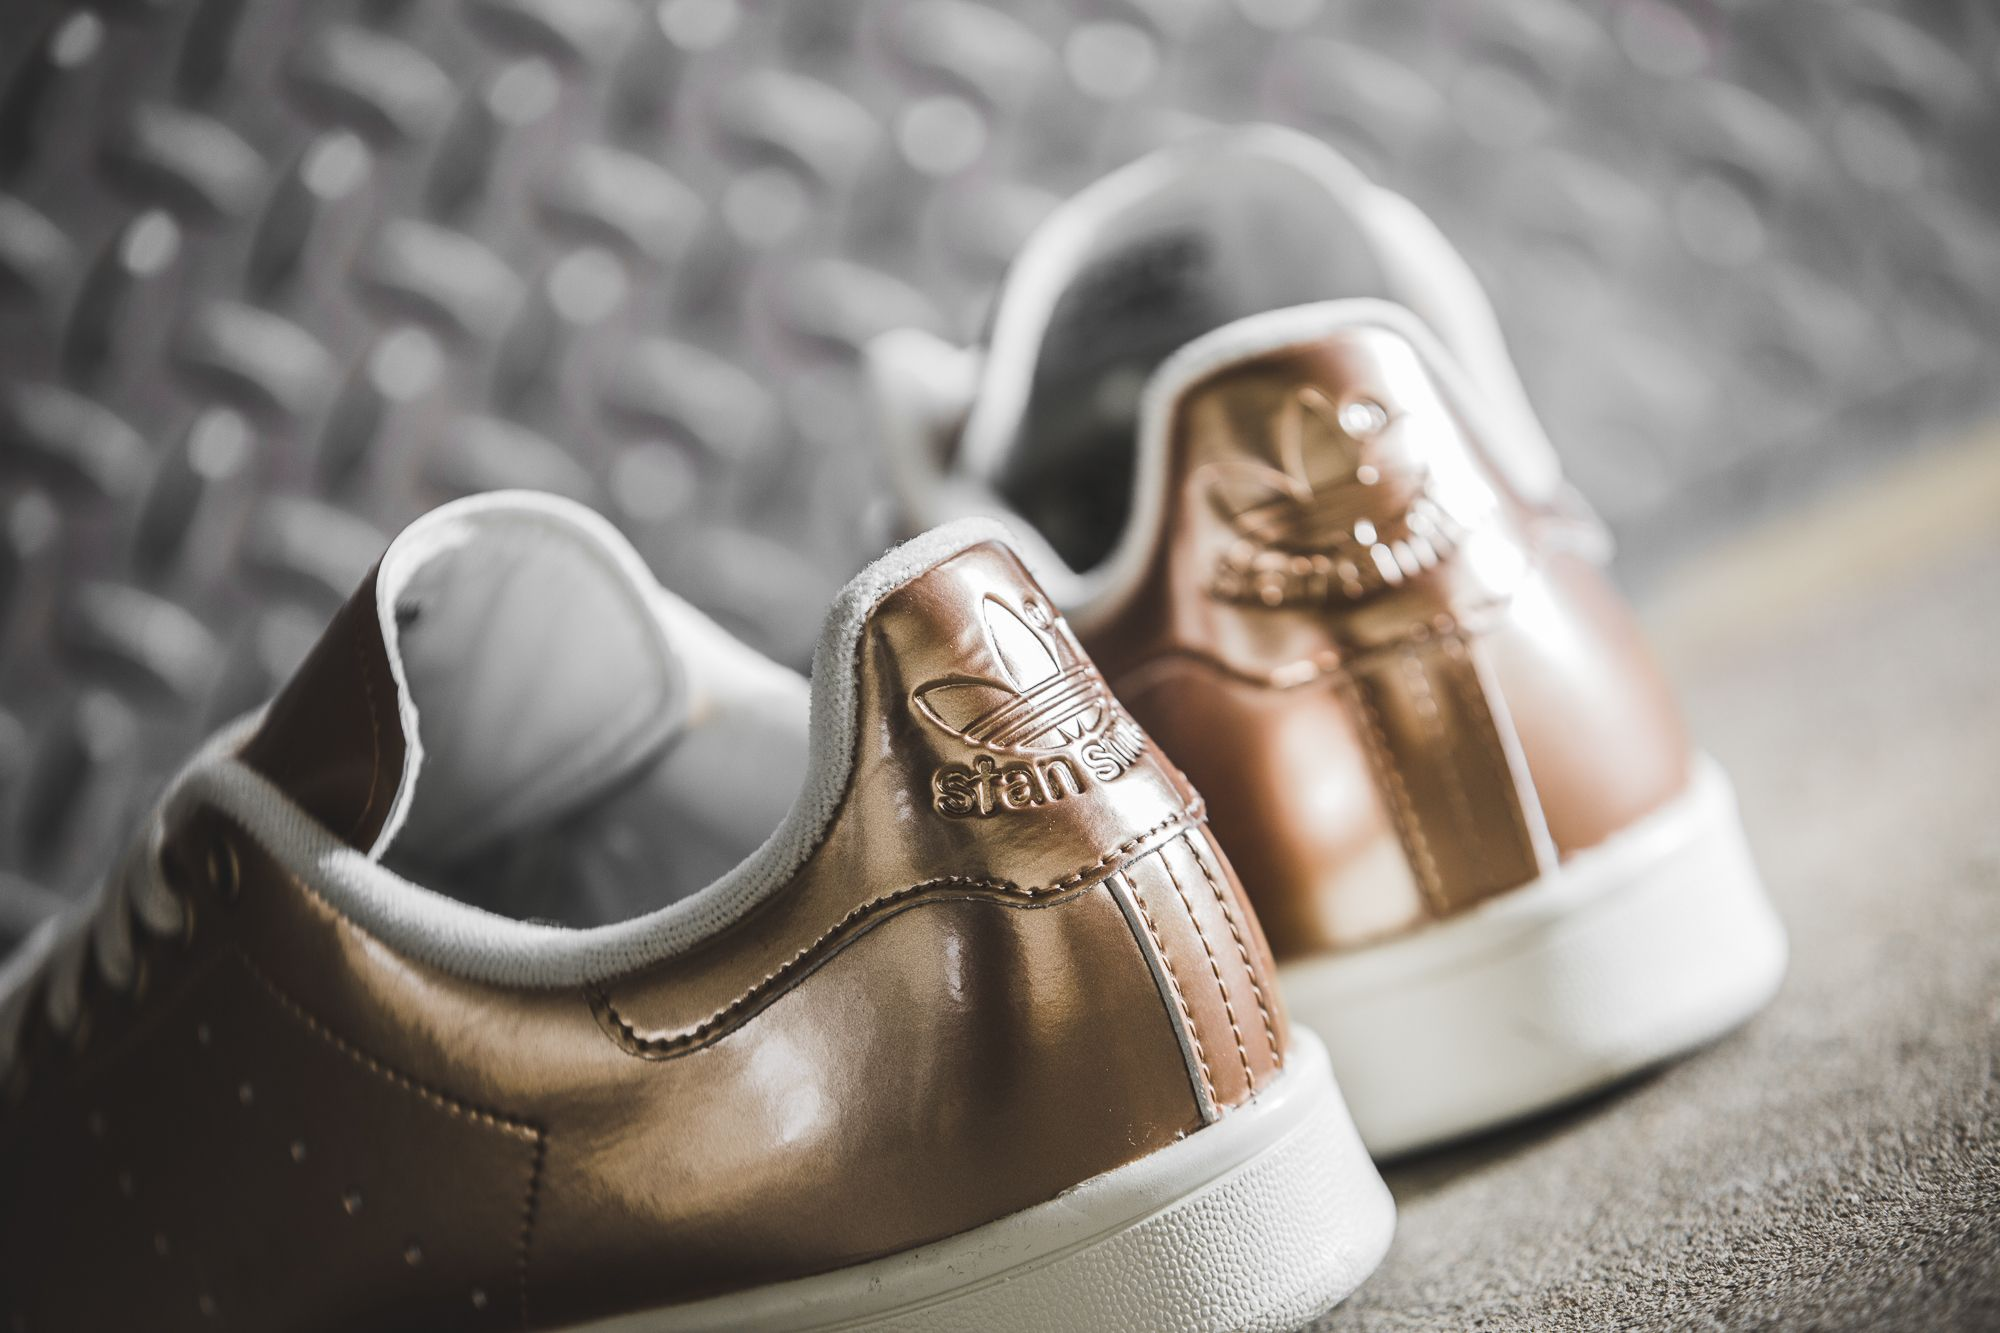 RELEASE REMINDER*** The Stan Smith